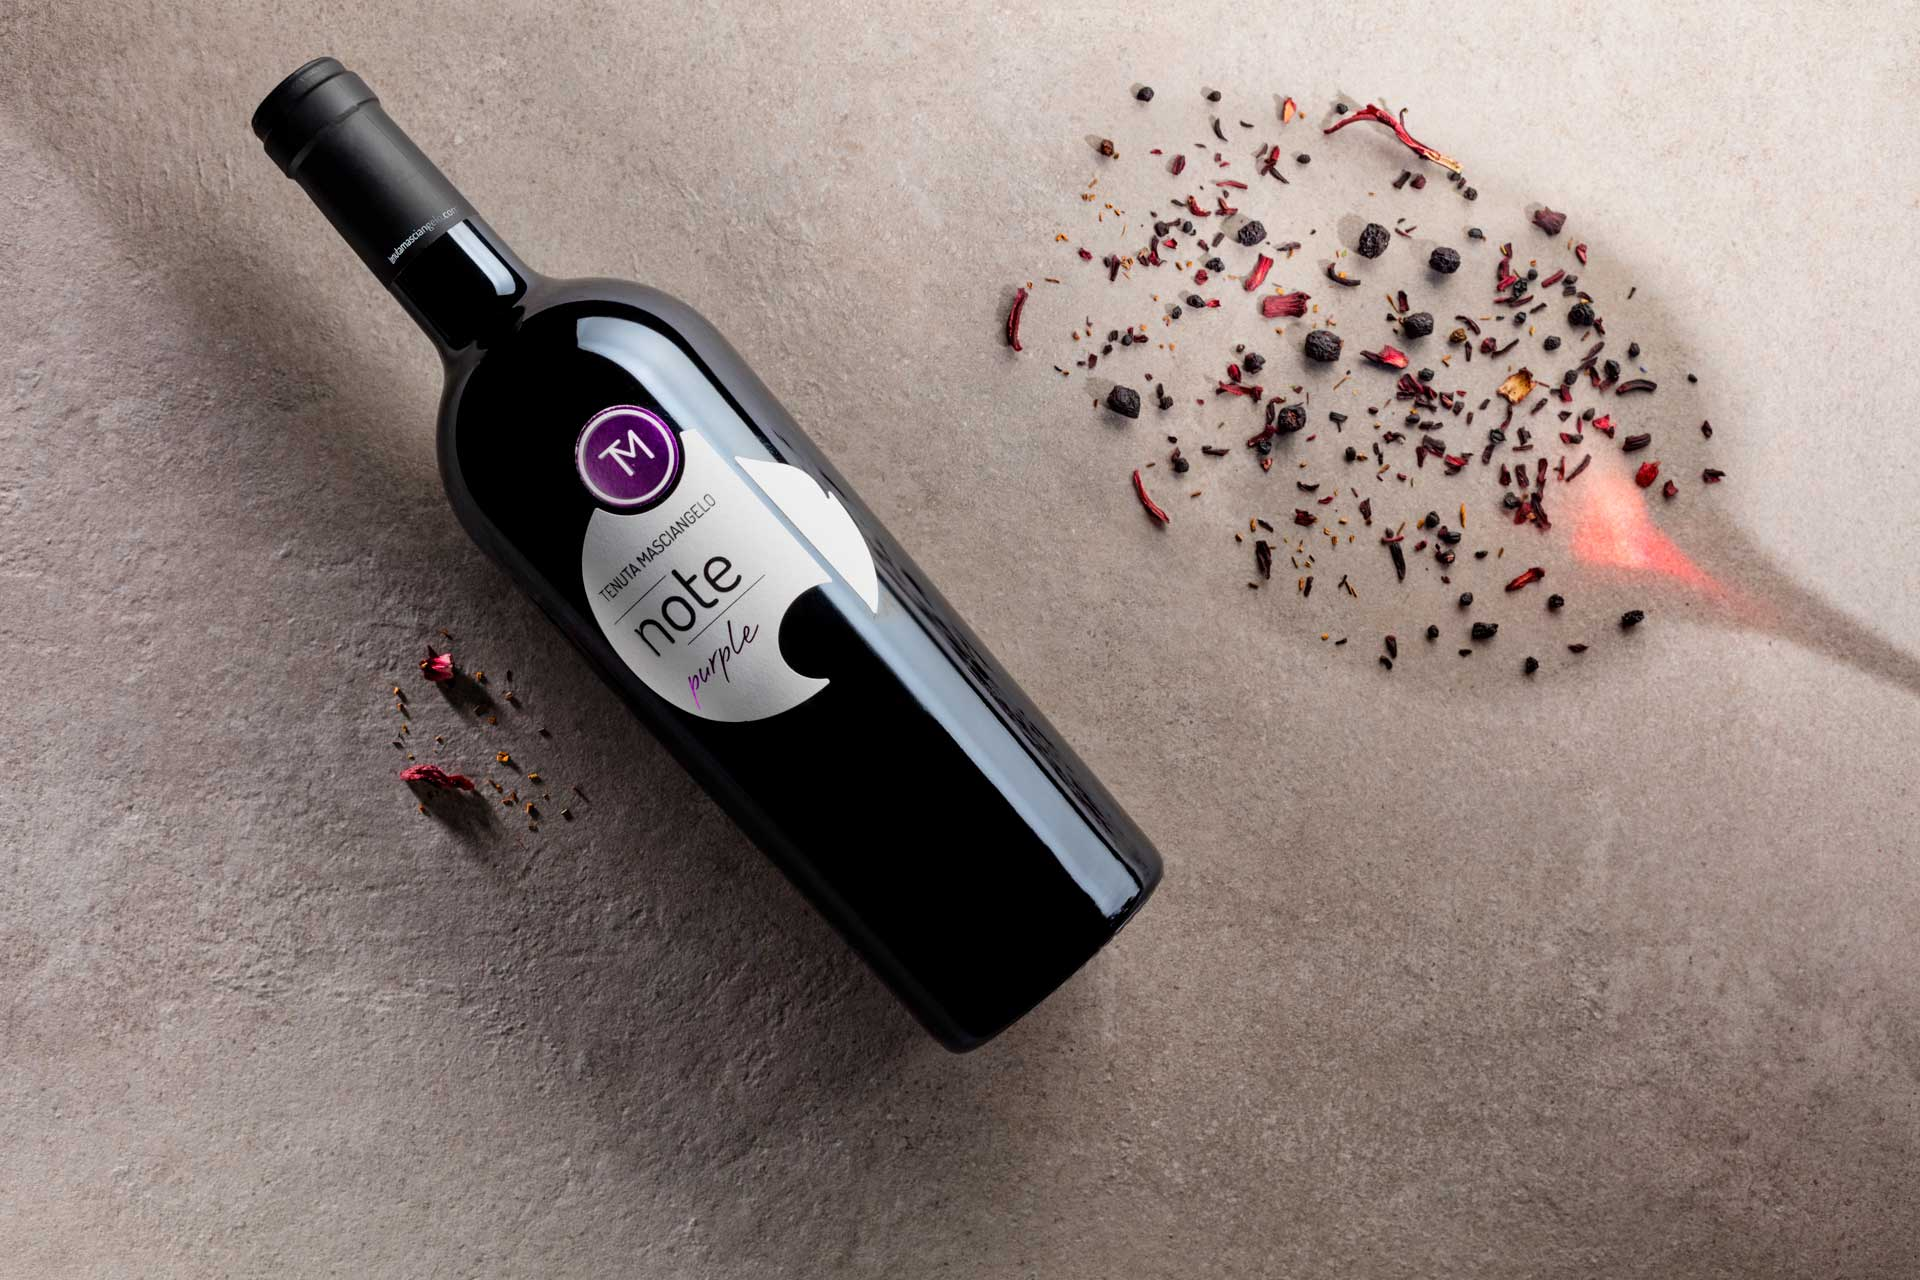 THE MONTEPULCIANO D'ABRUZZO PROTAGONIST IN MILAN